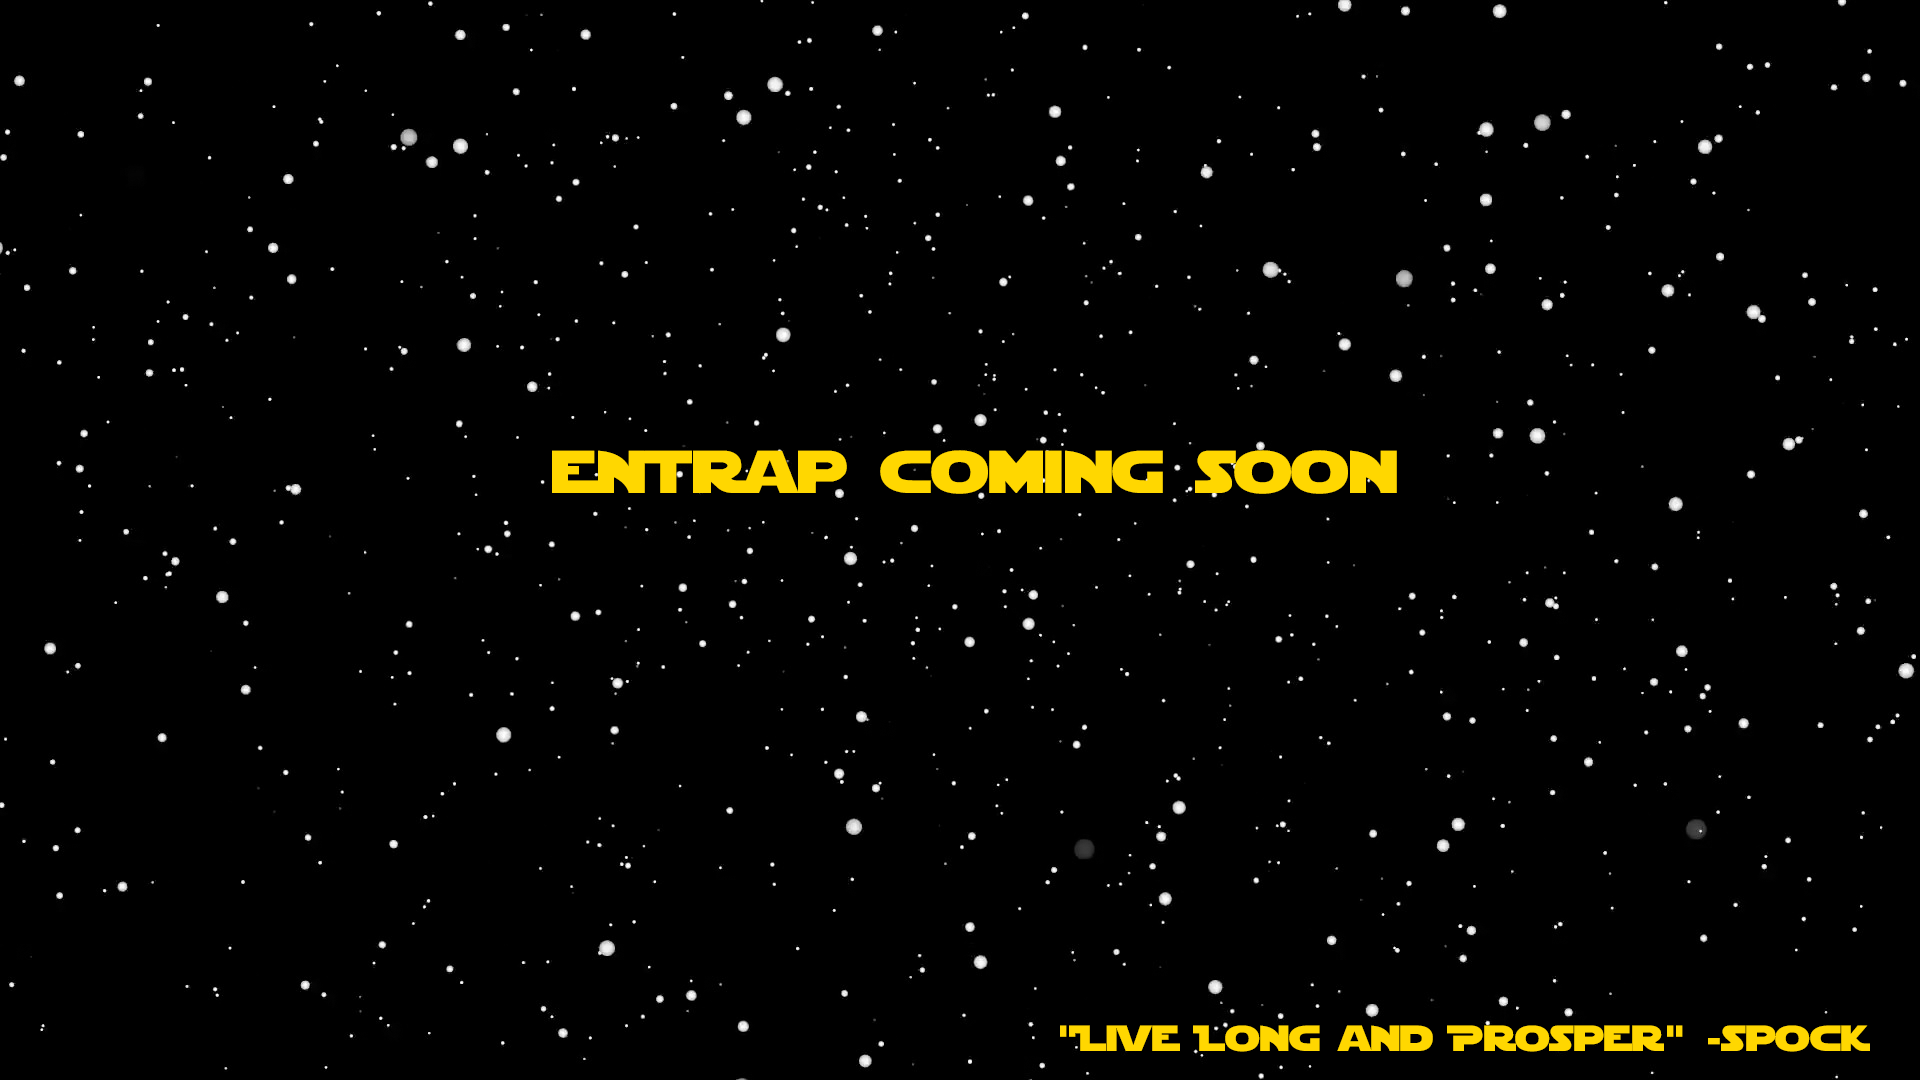 entrap_coming_soon